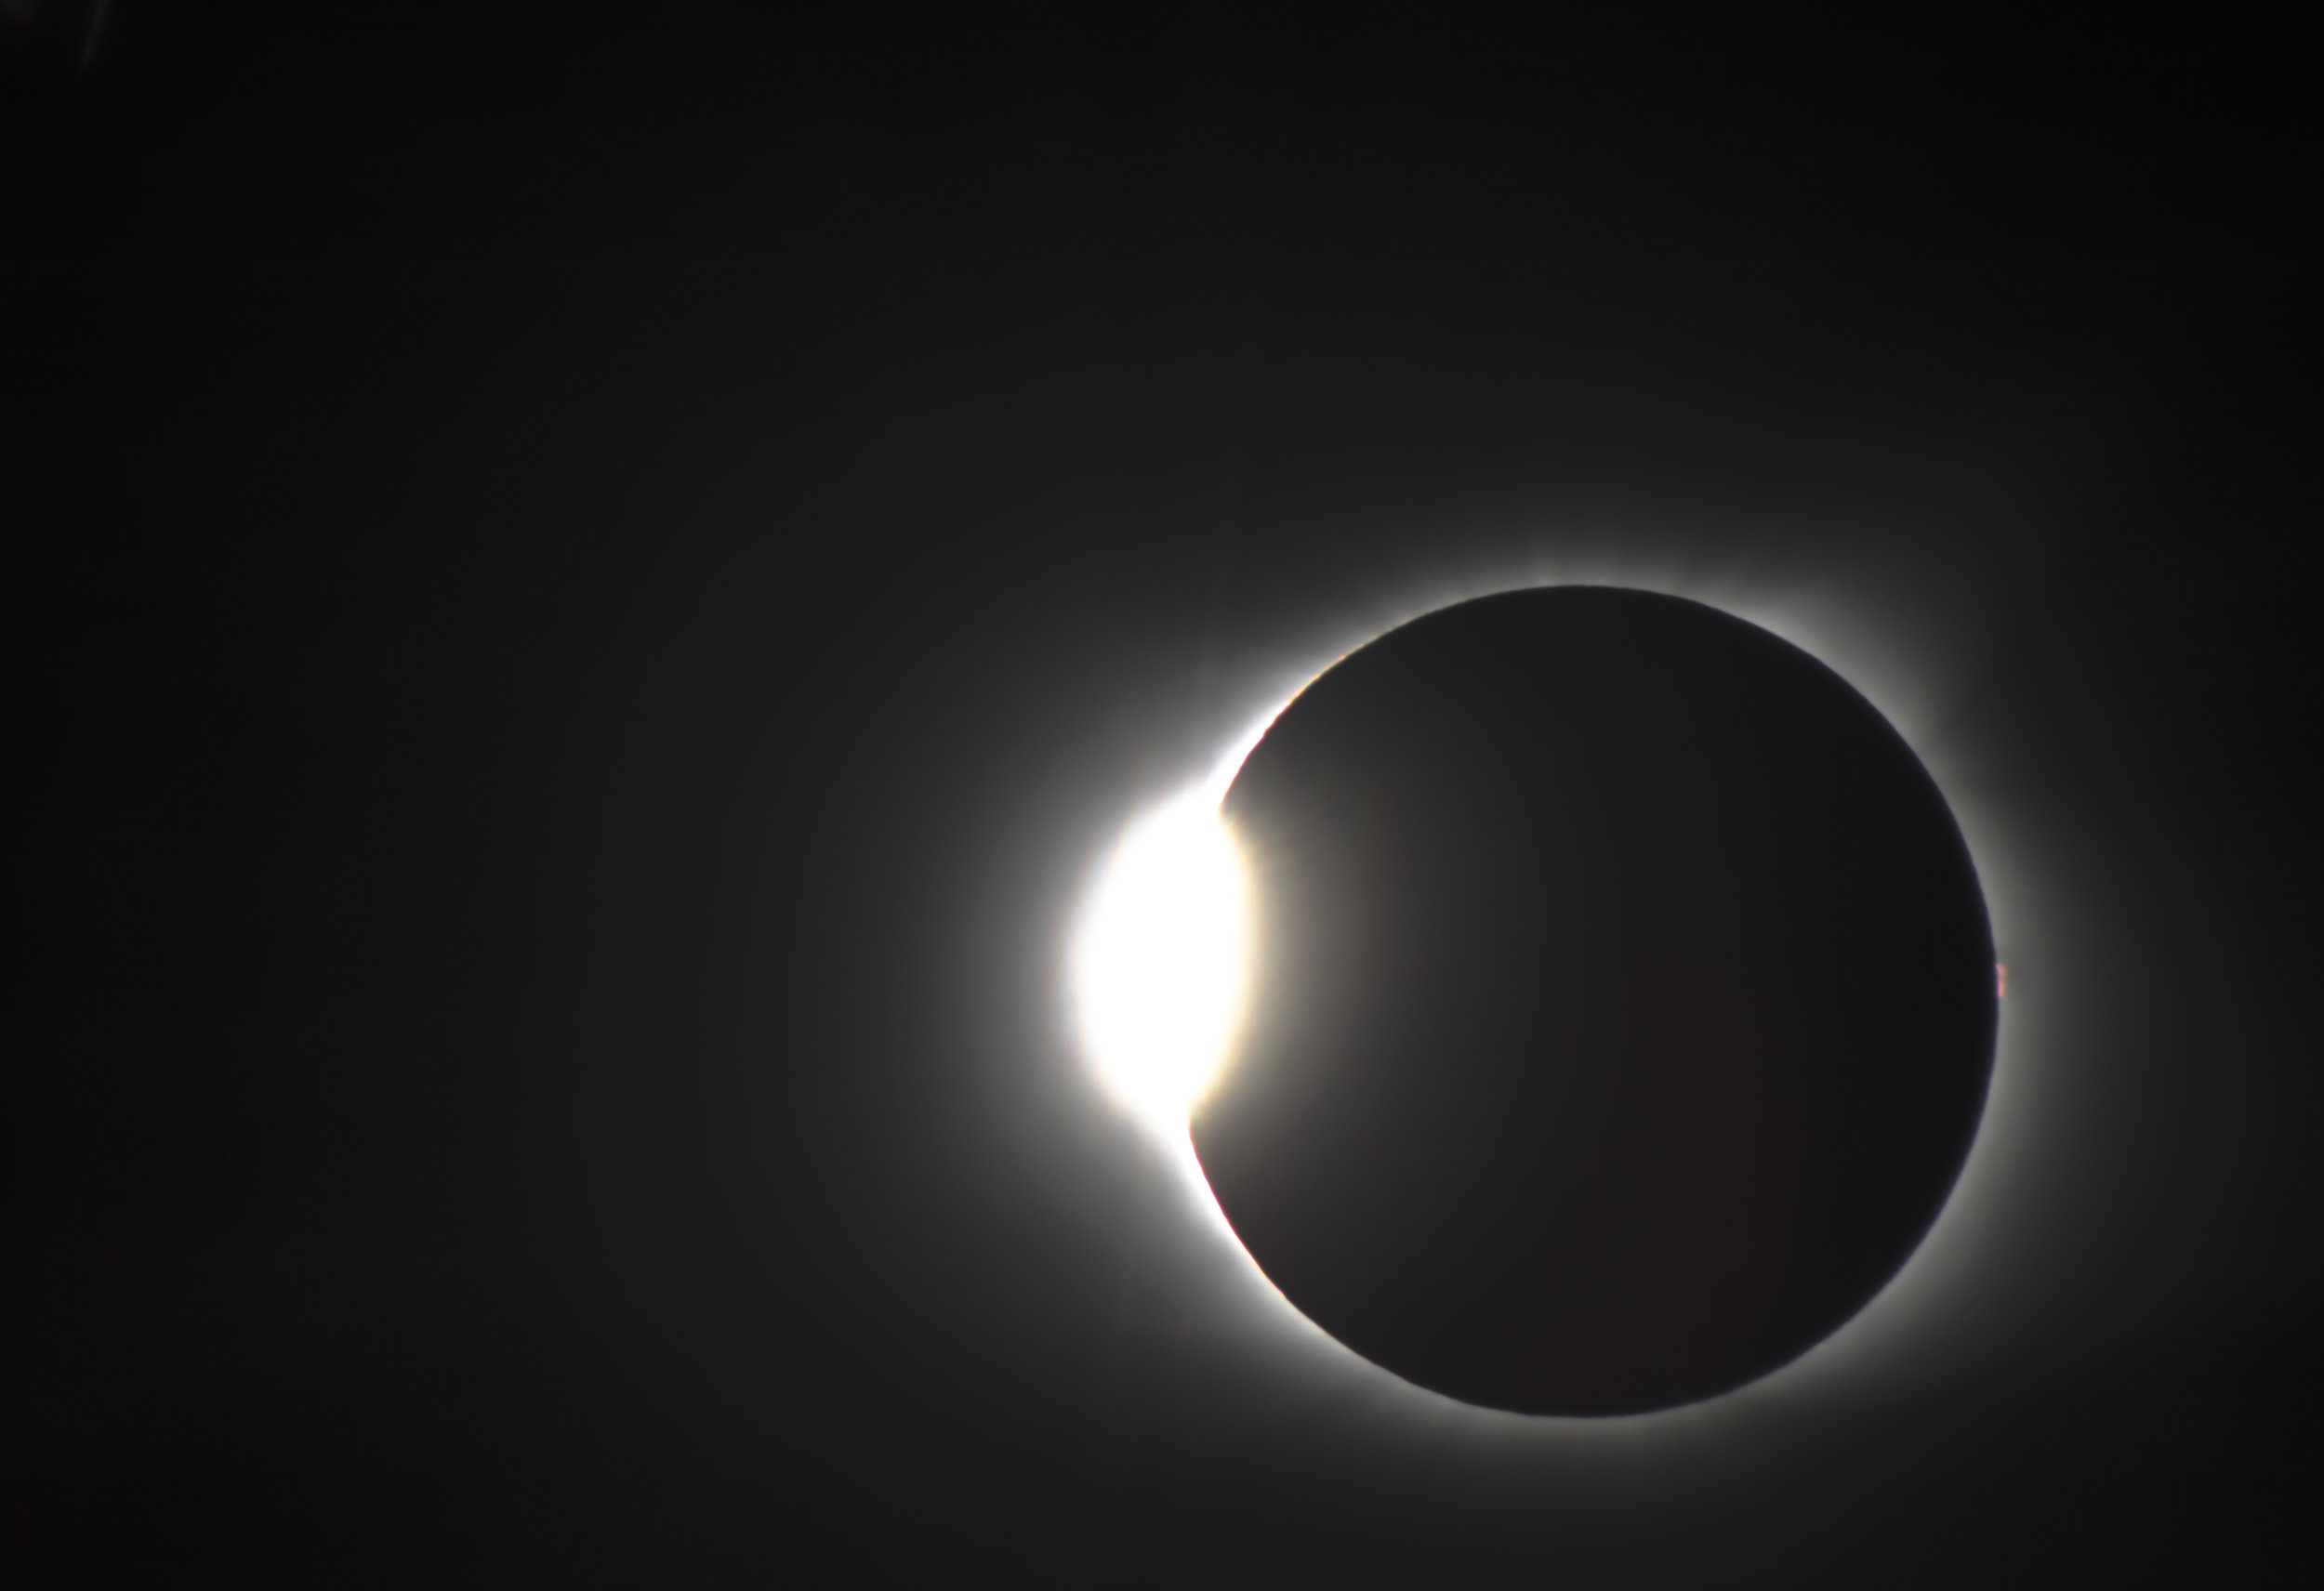 Totality, part 5